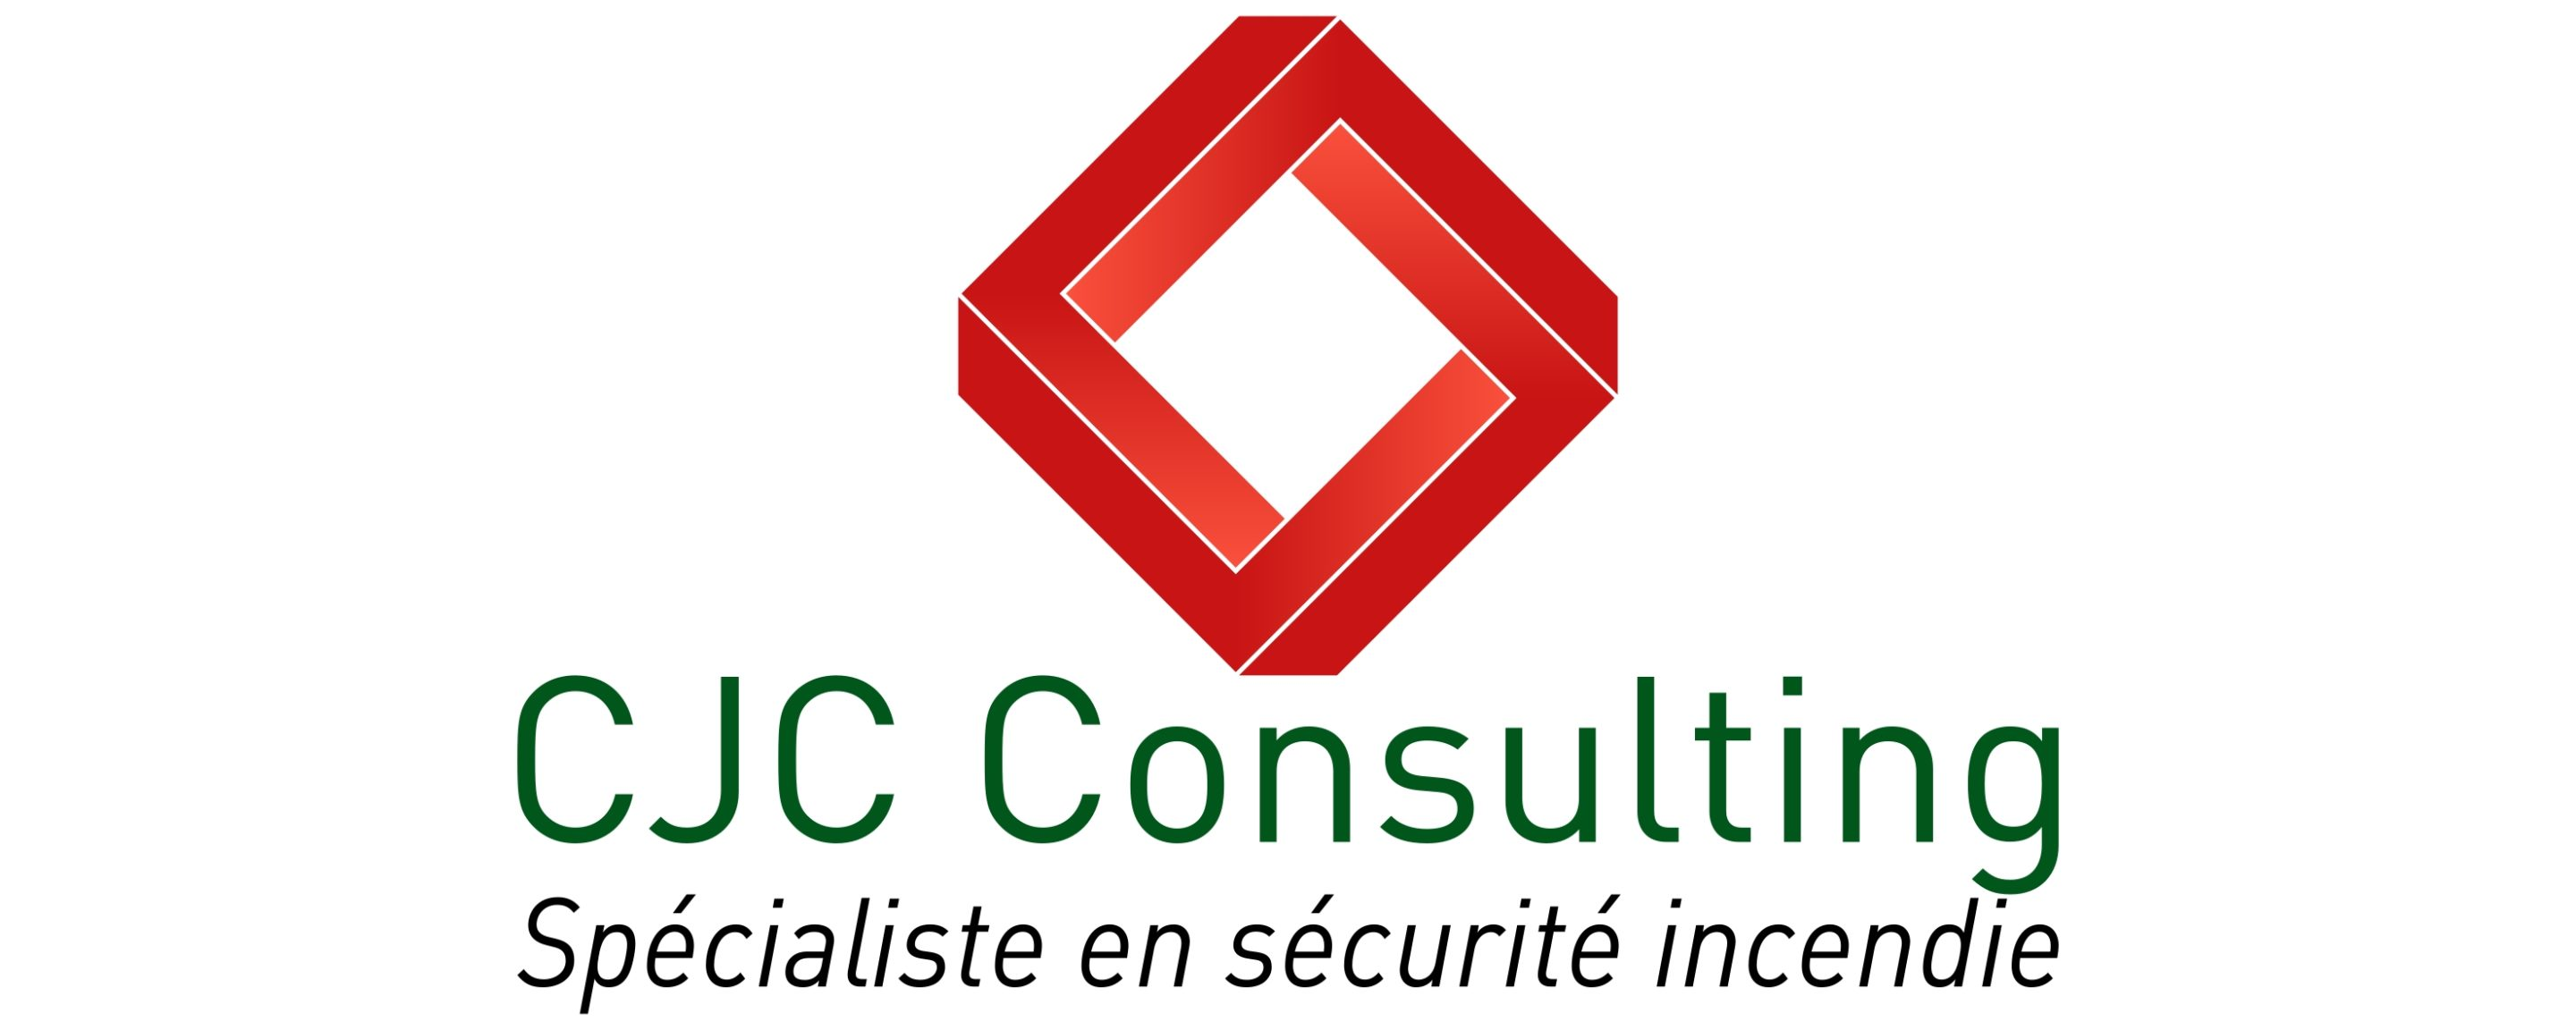 cjc-consulting-incendie